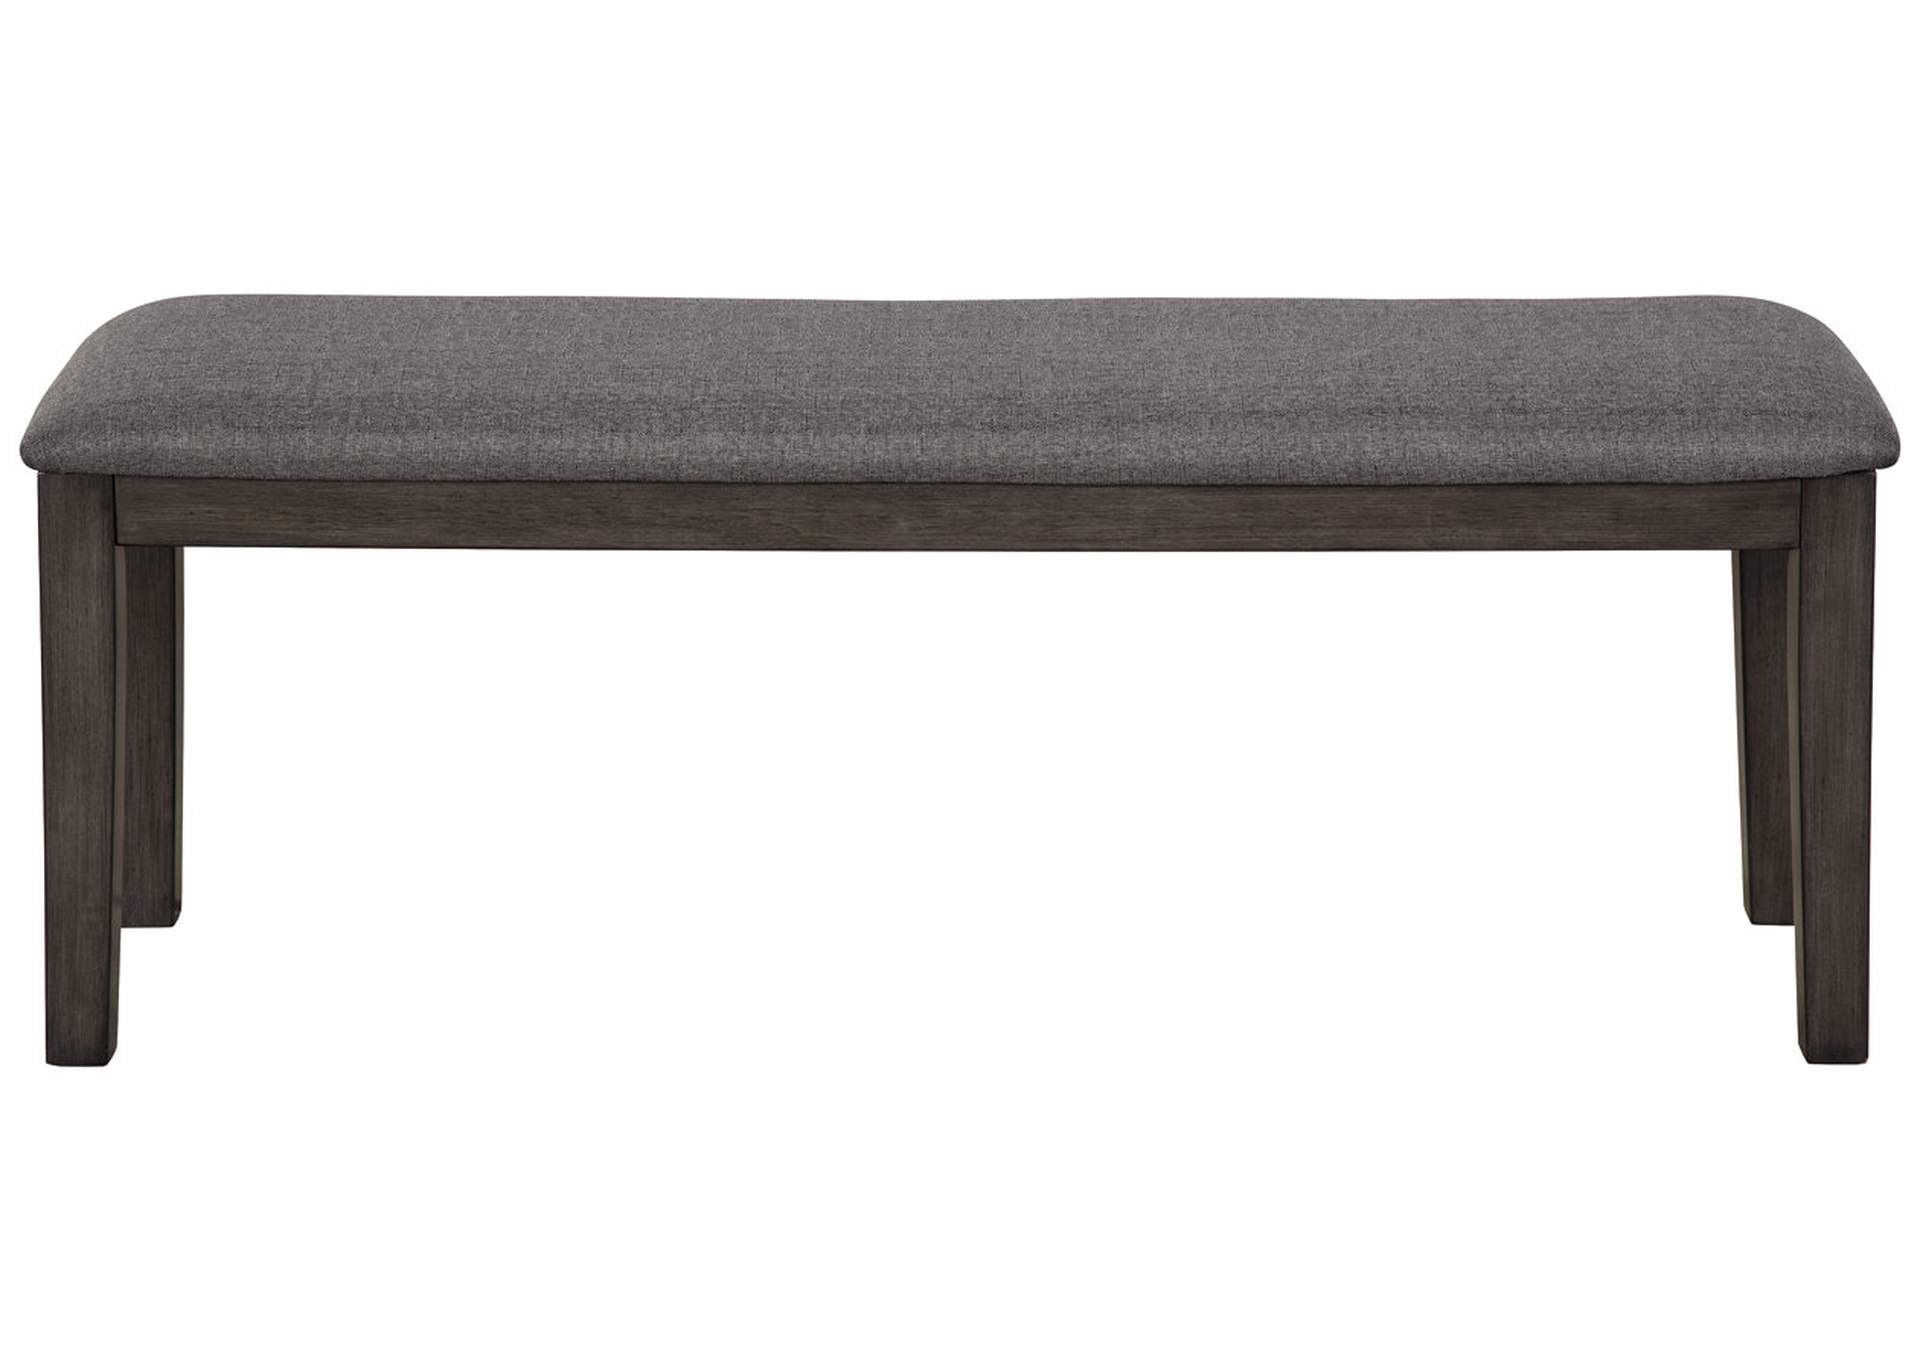 Luvoni Dark Charcoal Gray Dining Bench,Direct To Consumer Express